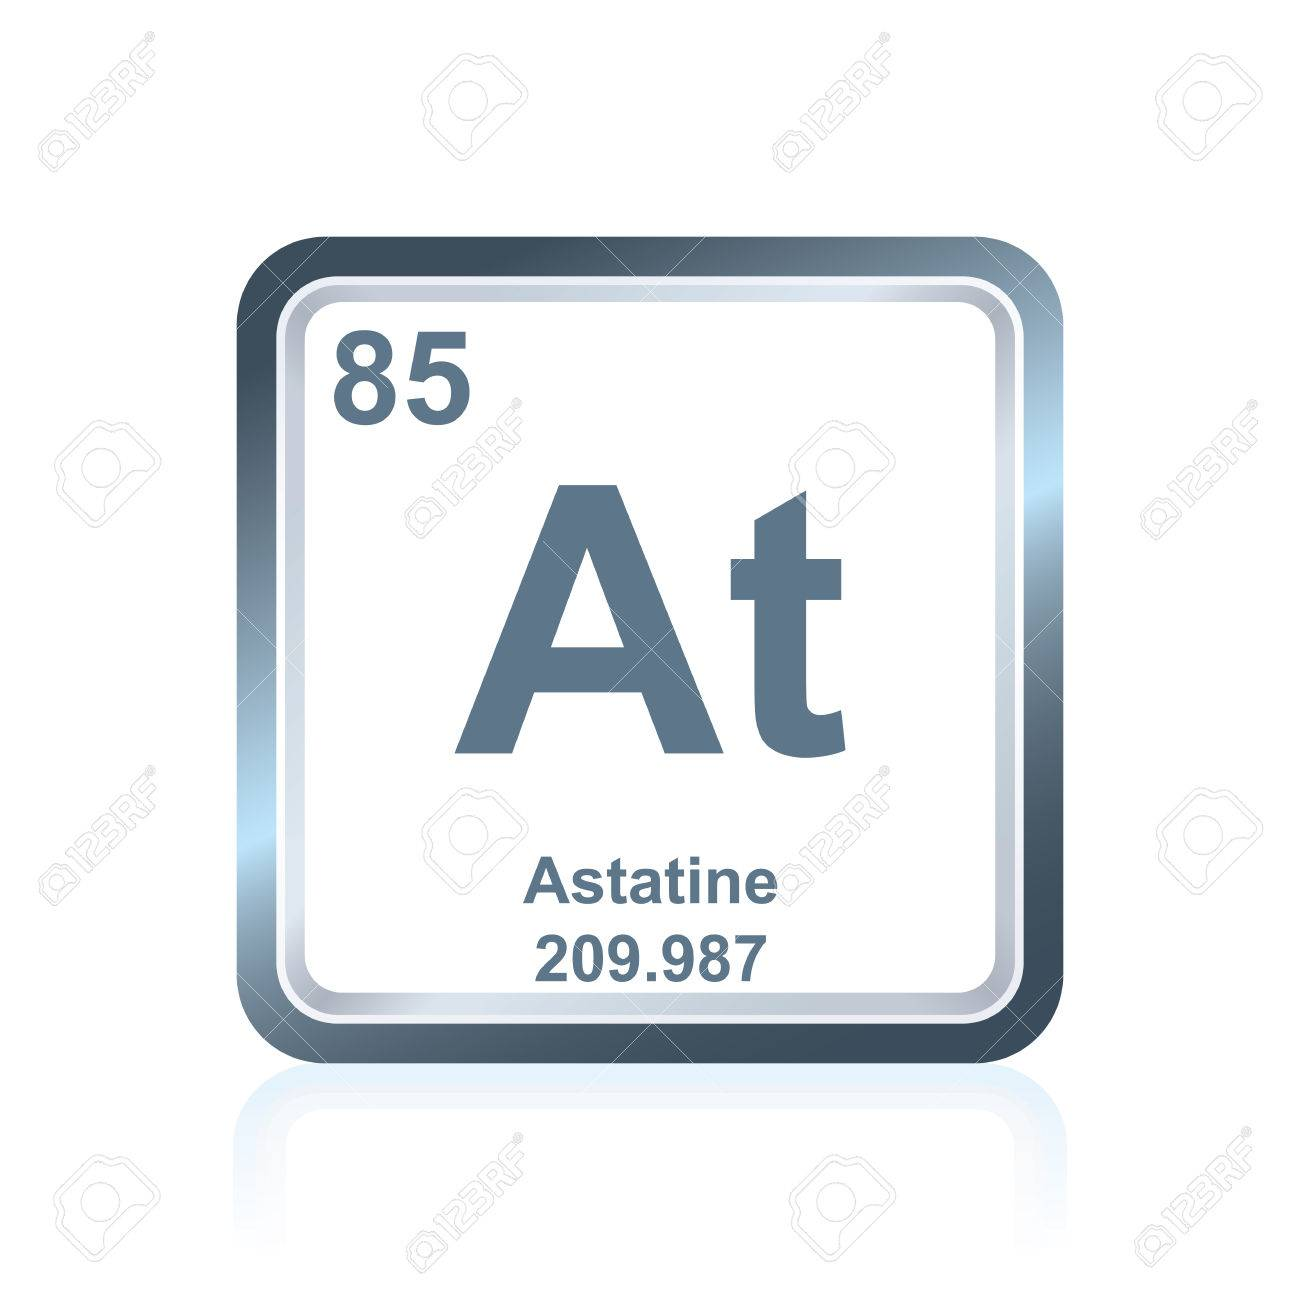 Gold symbol on periodic table image collections periodic table astatine symbol periodic table choice image periodic table images symbol of chemical element astatine as seen gamestrikefo Choice Image